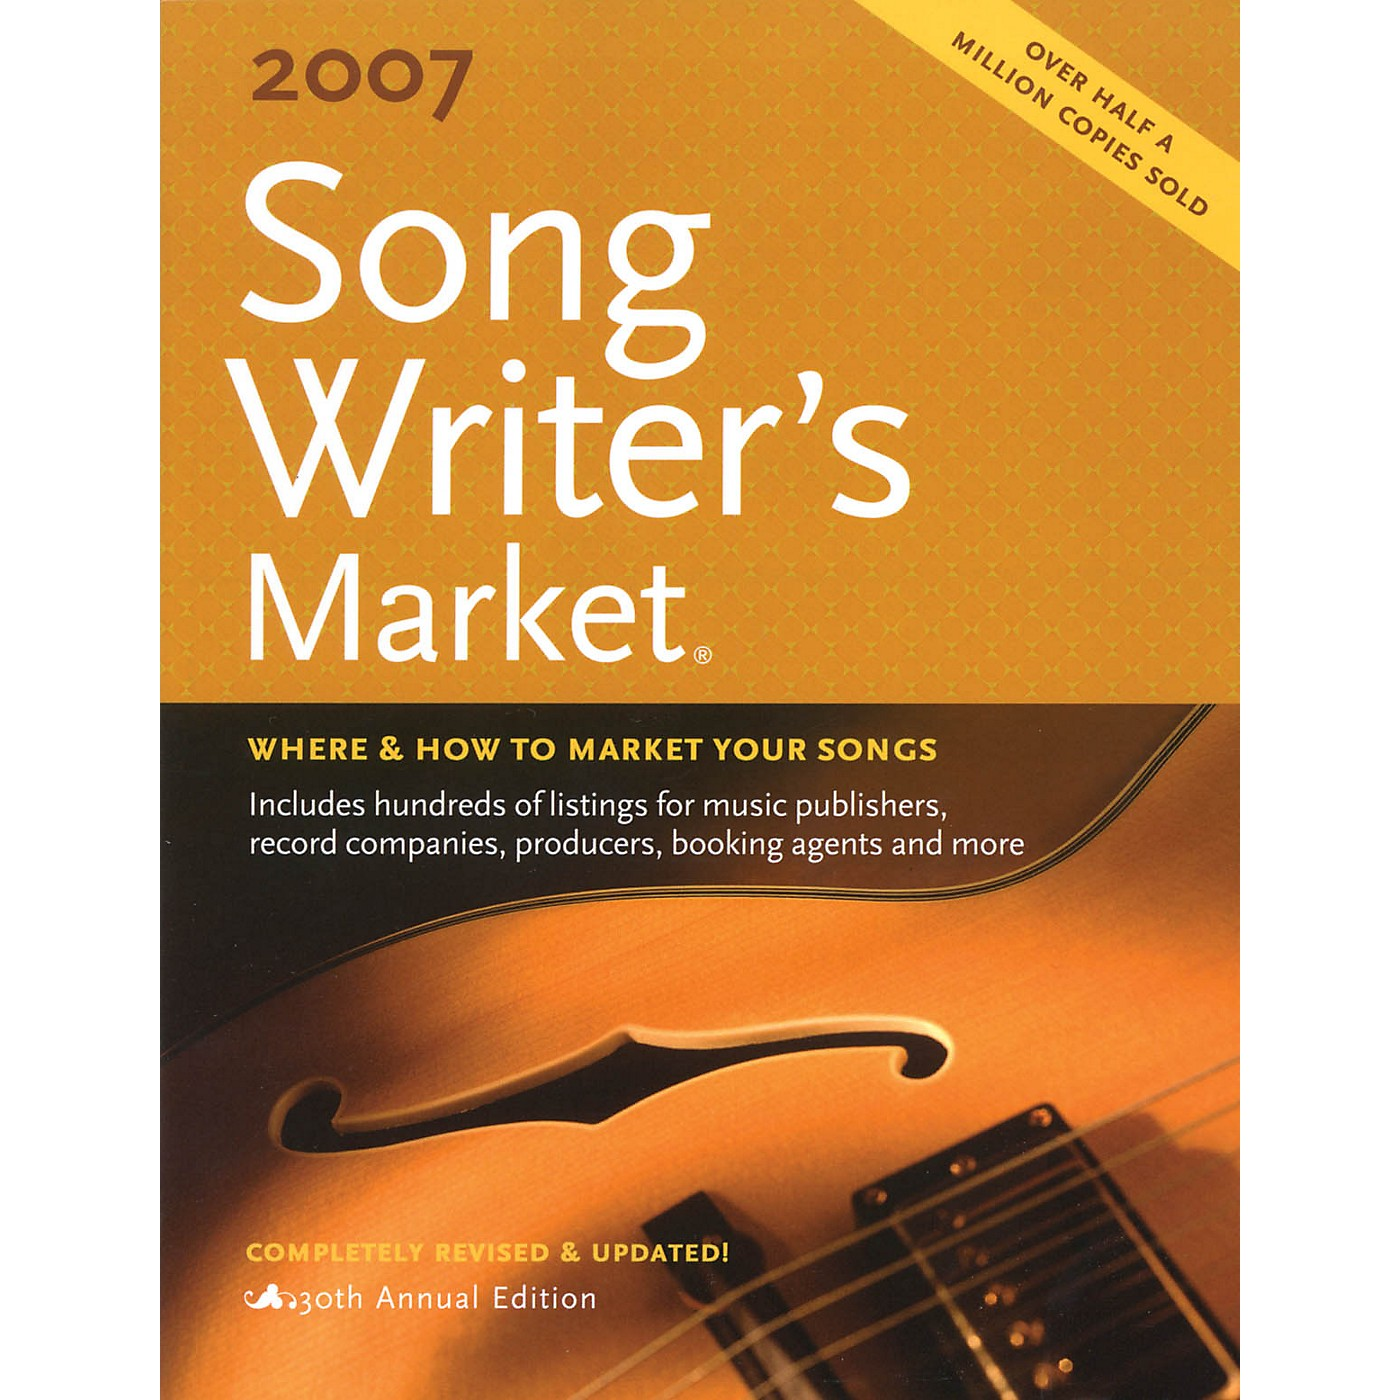 Writer's Digest 2007 Song Writer's Market (Where & How to Market Your Songs) Book Series Softcover by Various Authors thumbnail